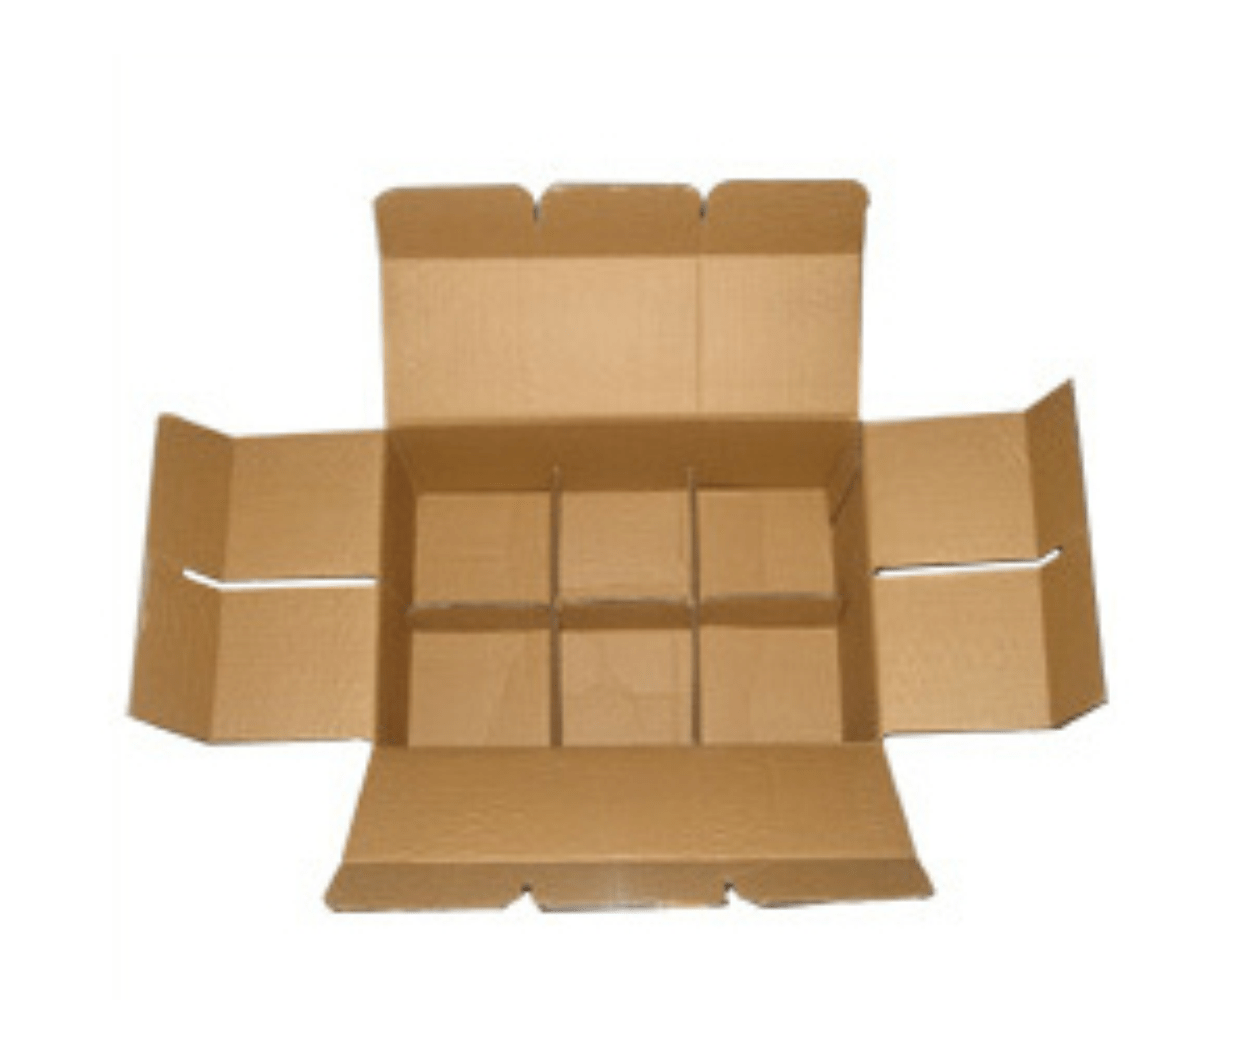 Manufacturing Carton Box Supplier Boxotech Packaging Industries Corrugated Boxes